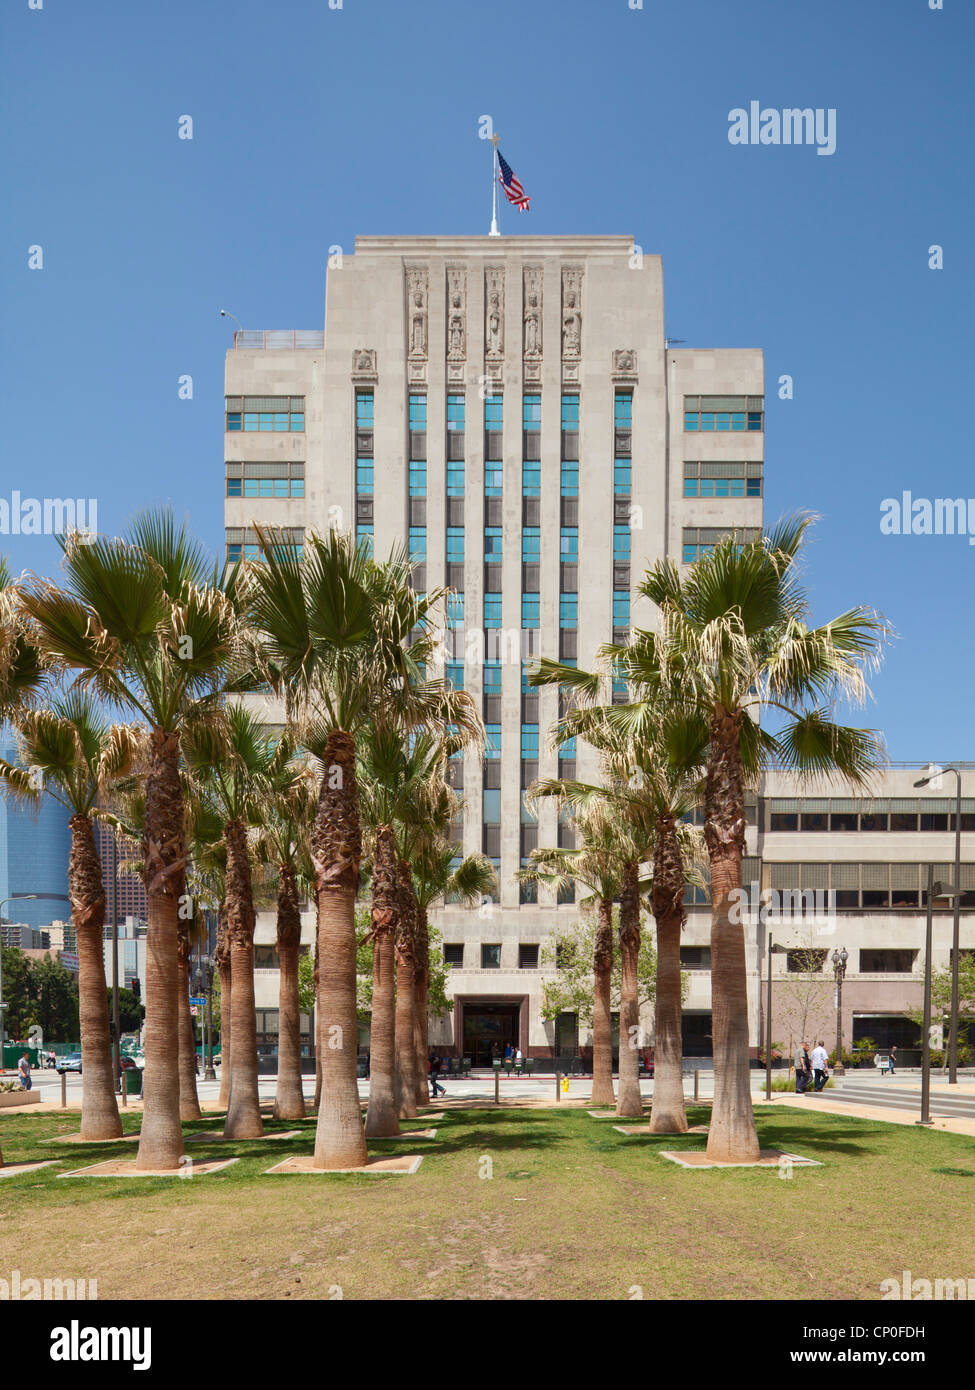 Los Angeles Times Editorial Library - Stock Image